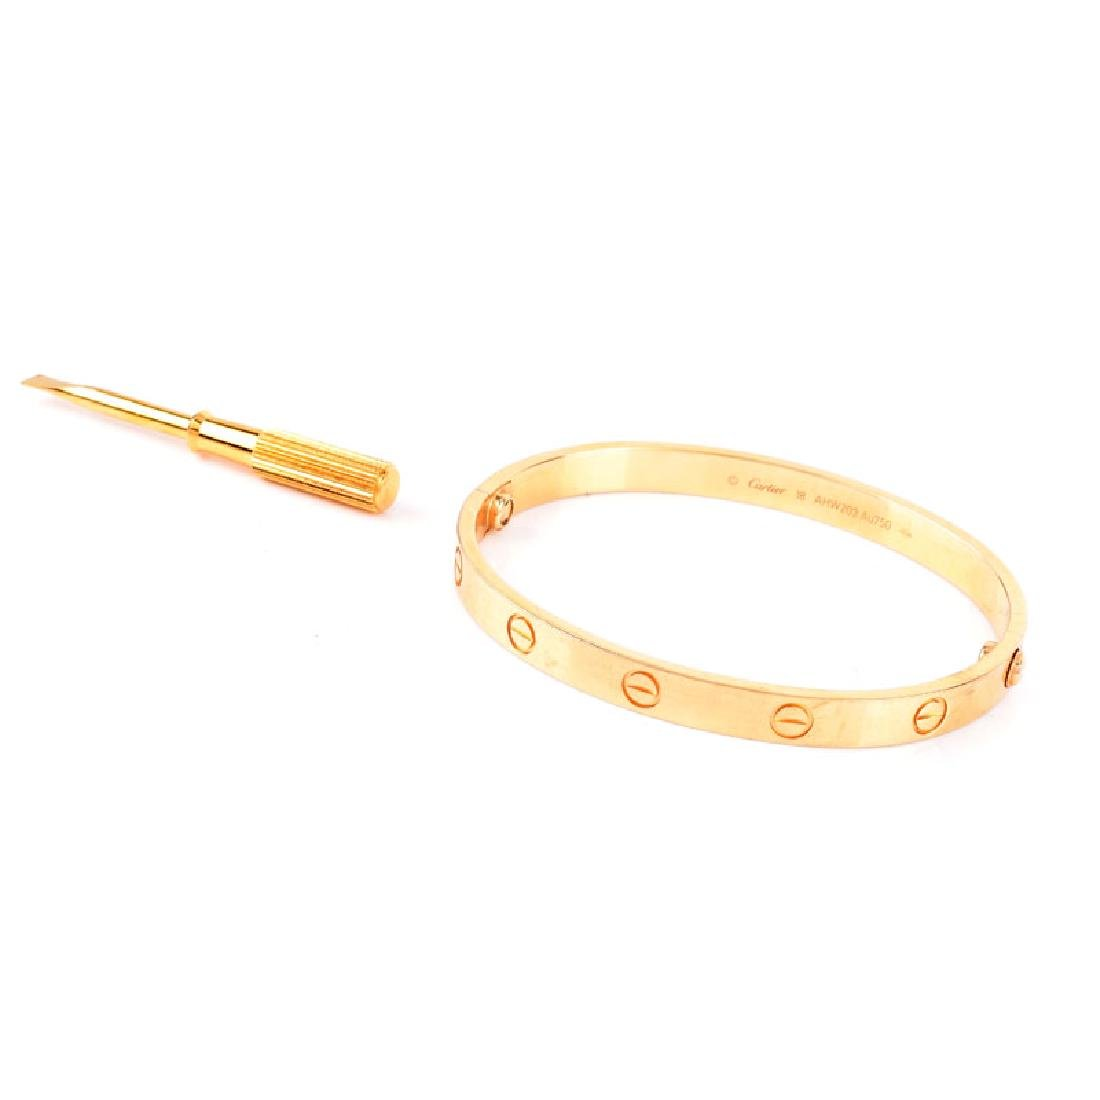 Circa 2014 Cartier 18 Karat Yellow Gold Love Bracelet - 3